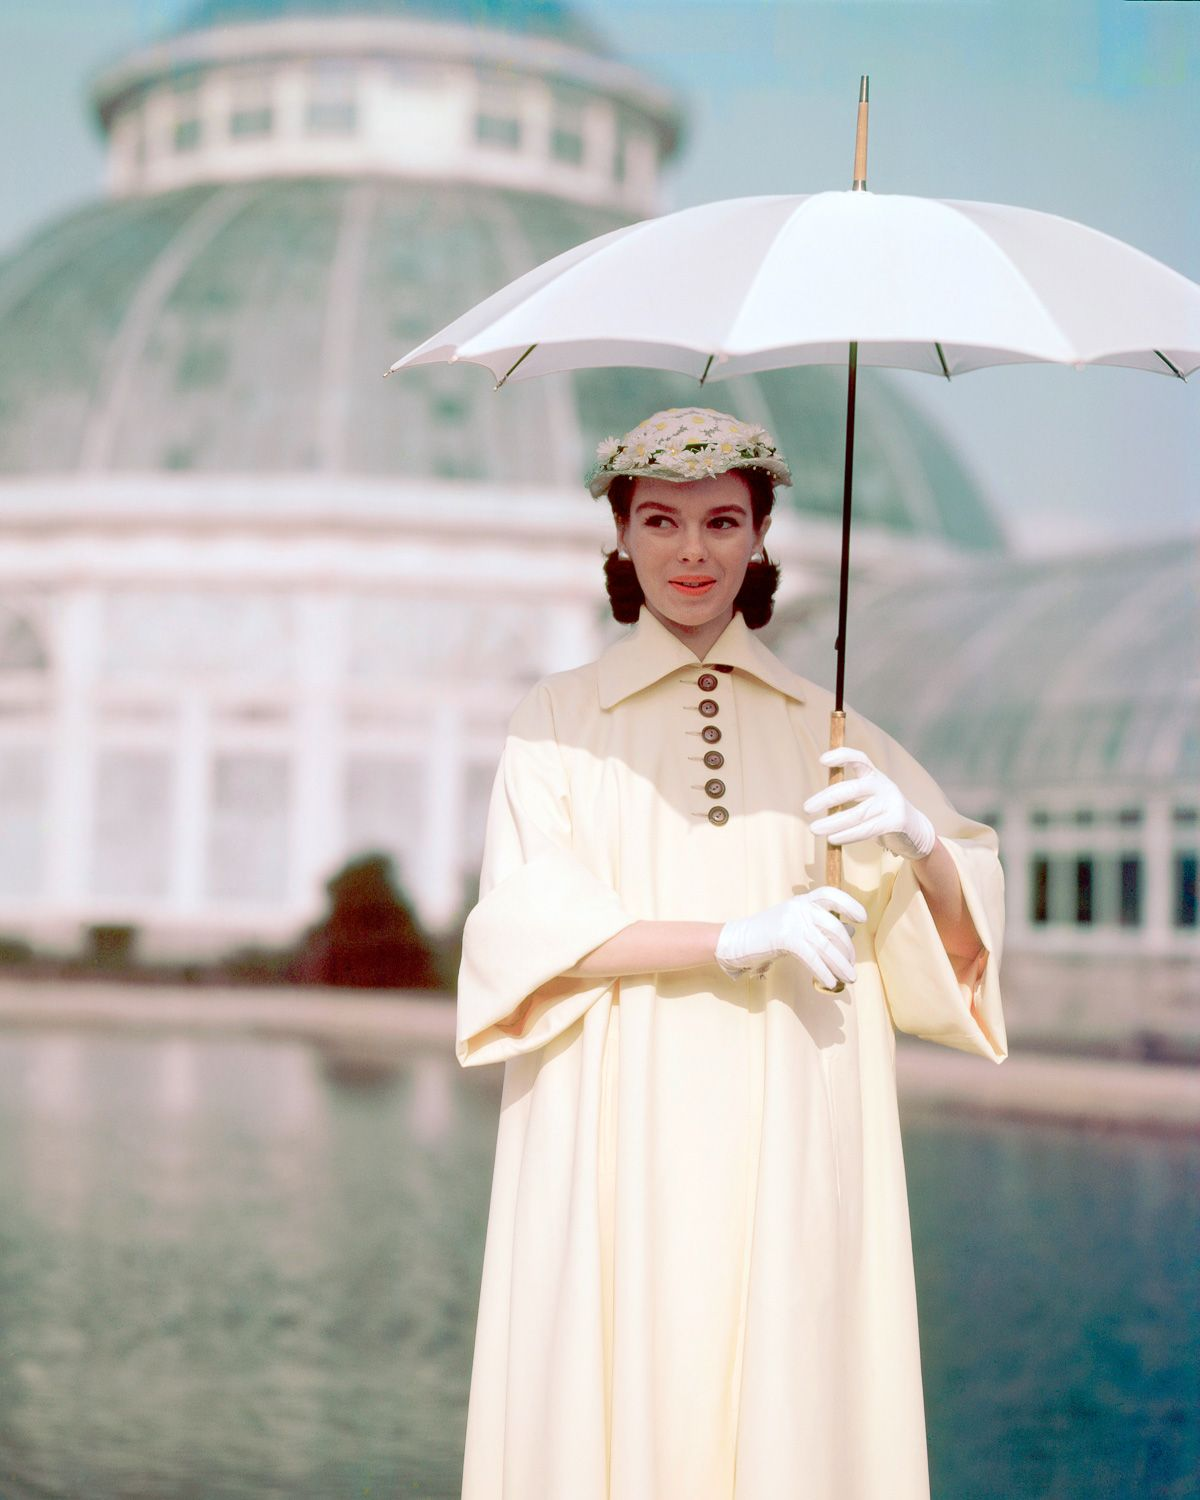 Dazzling photos capture 1940s fashion in rich color